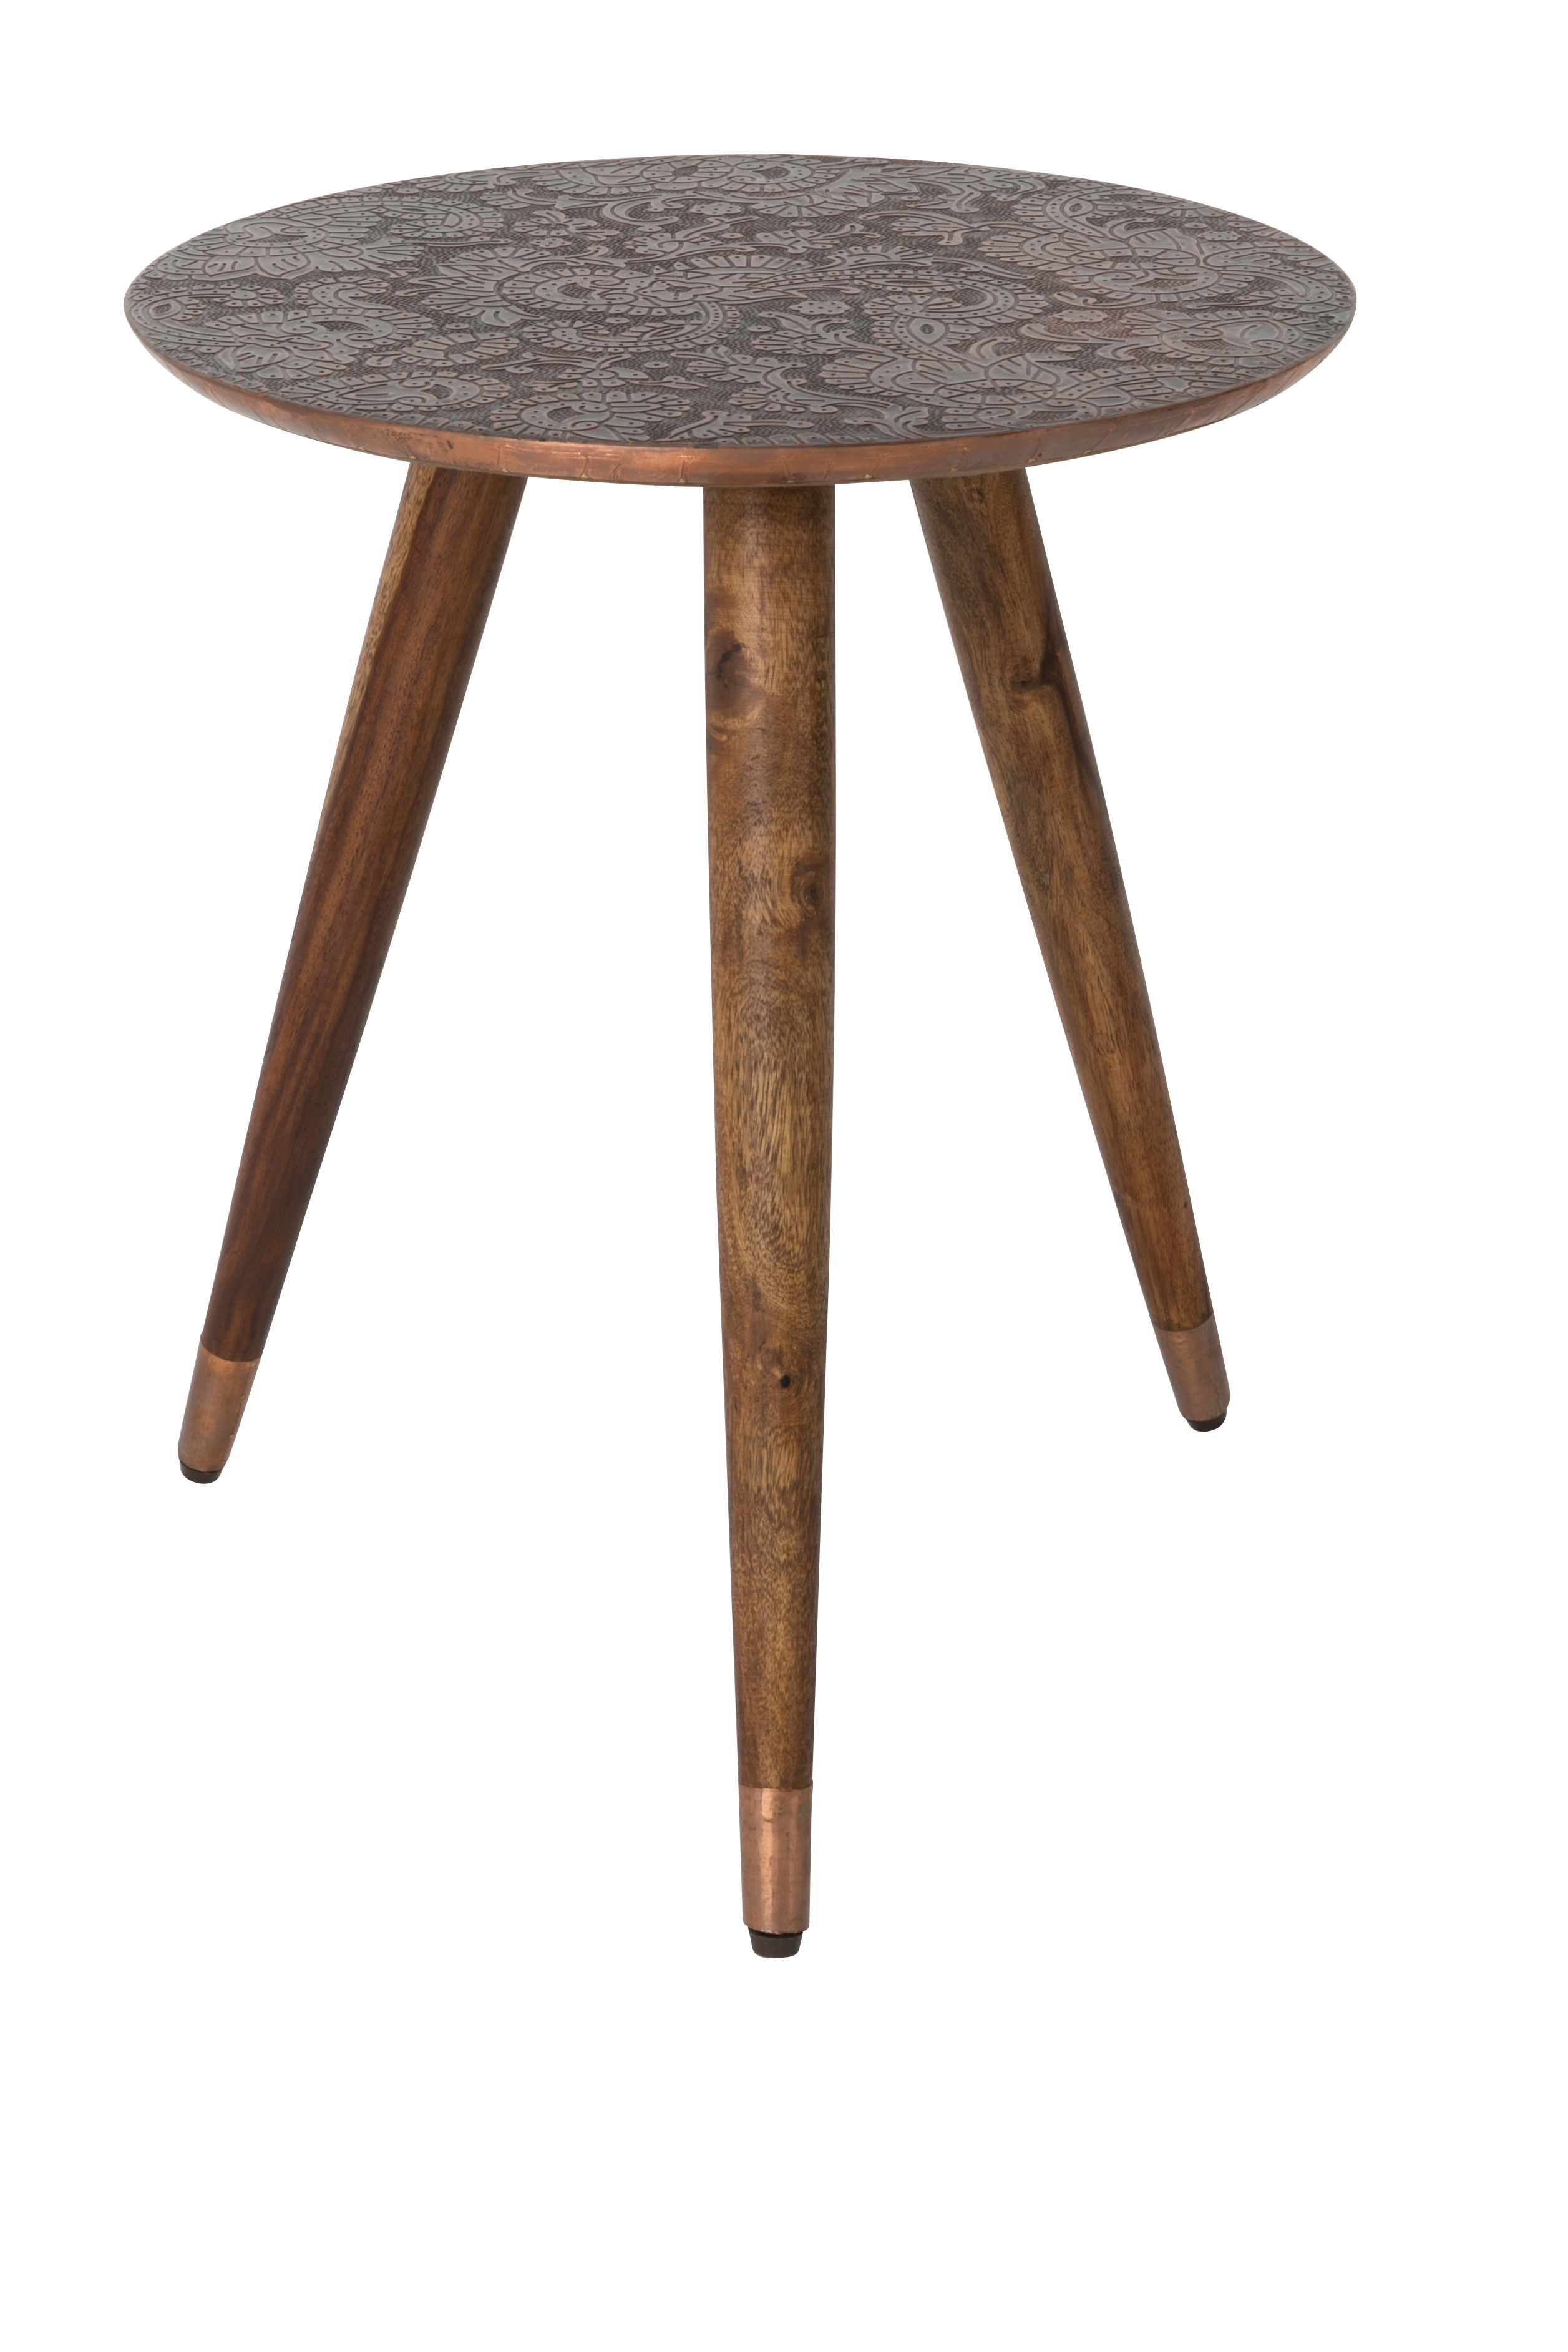 Bast Side Table Copper Sidetable Tabled Appoint Beistelltisch Bijzettafel Bijzettafel Bijzettafels Messing